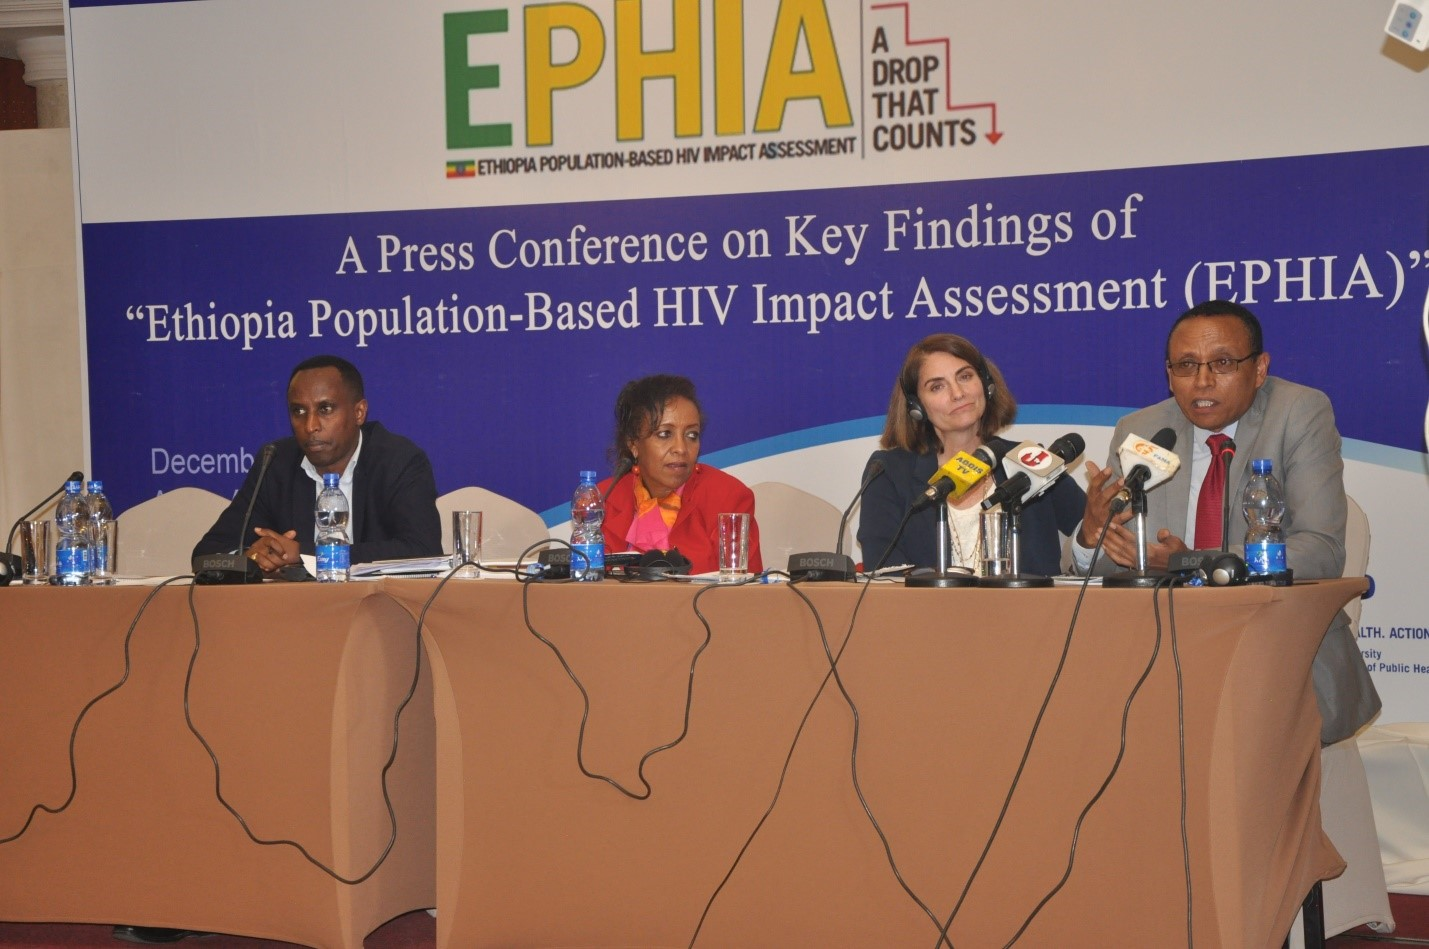 NEW FINDINGS OF ETHIOPIA POPULATION BASED HIV IMPACT ASSESSMENT